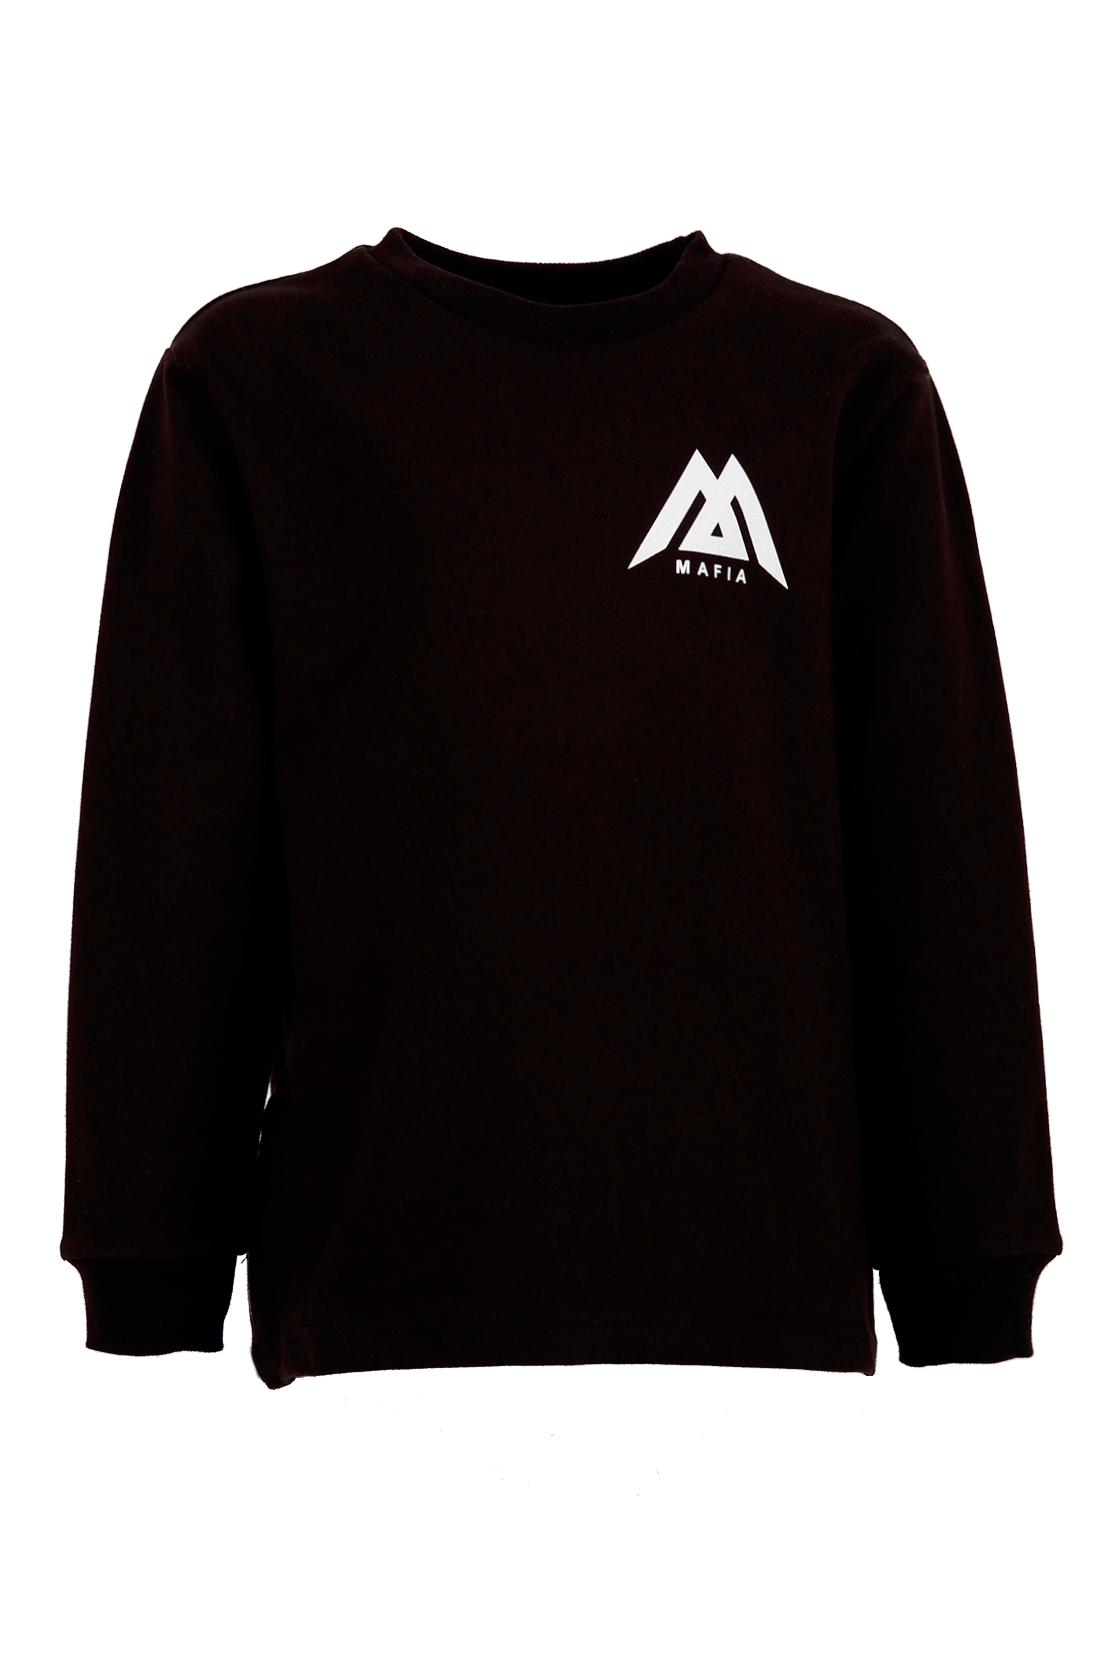 Kids long sleeve t-shirt Black Star Mafia 2.0